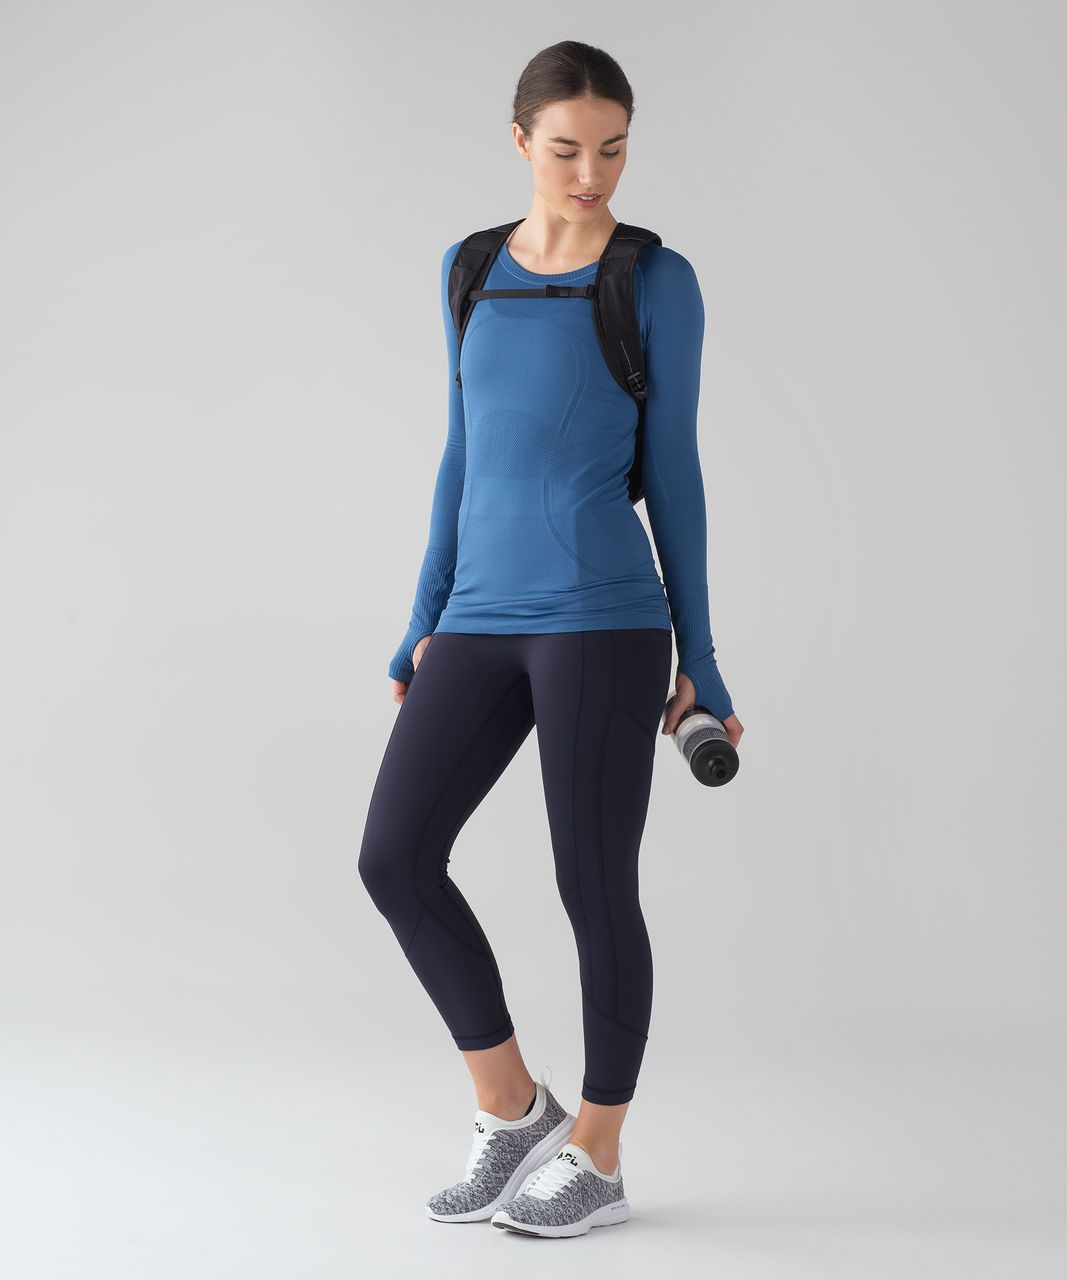 Lululemon Swiftly Tech Long Sleeve Crew - Royal / Royal